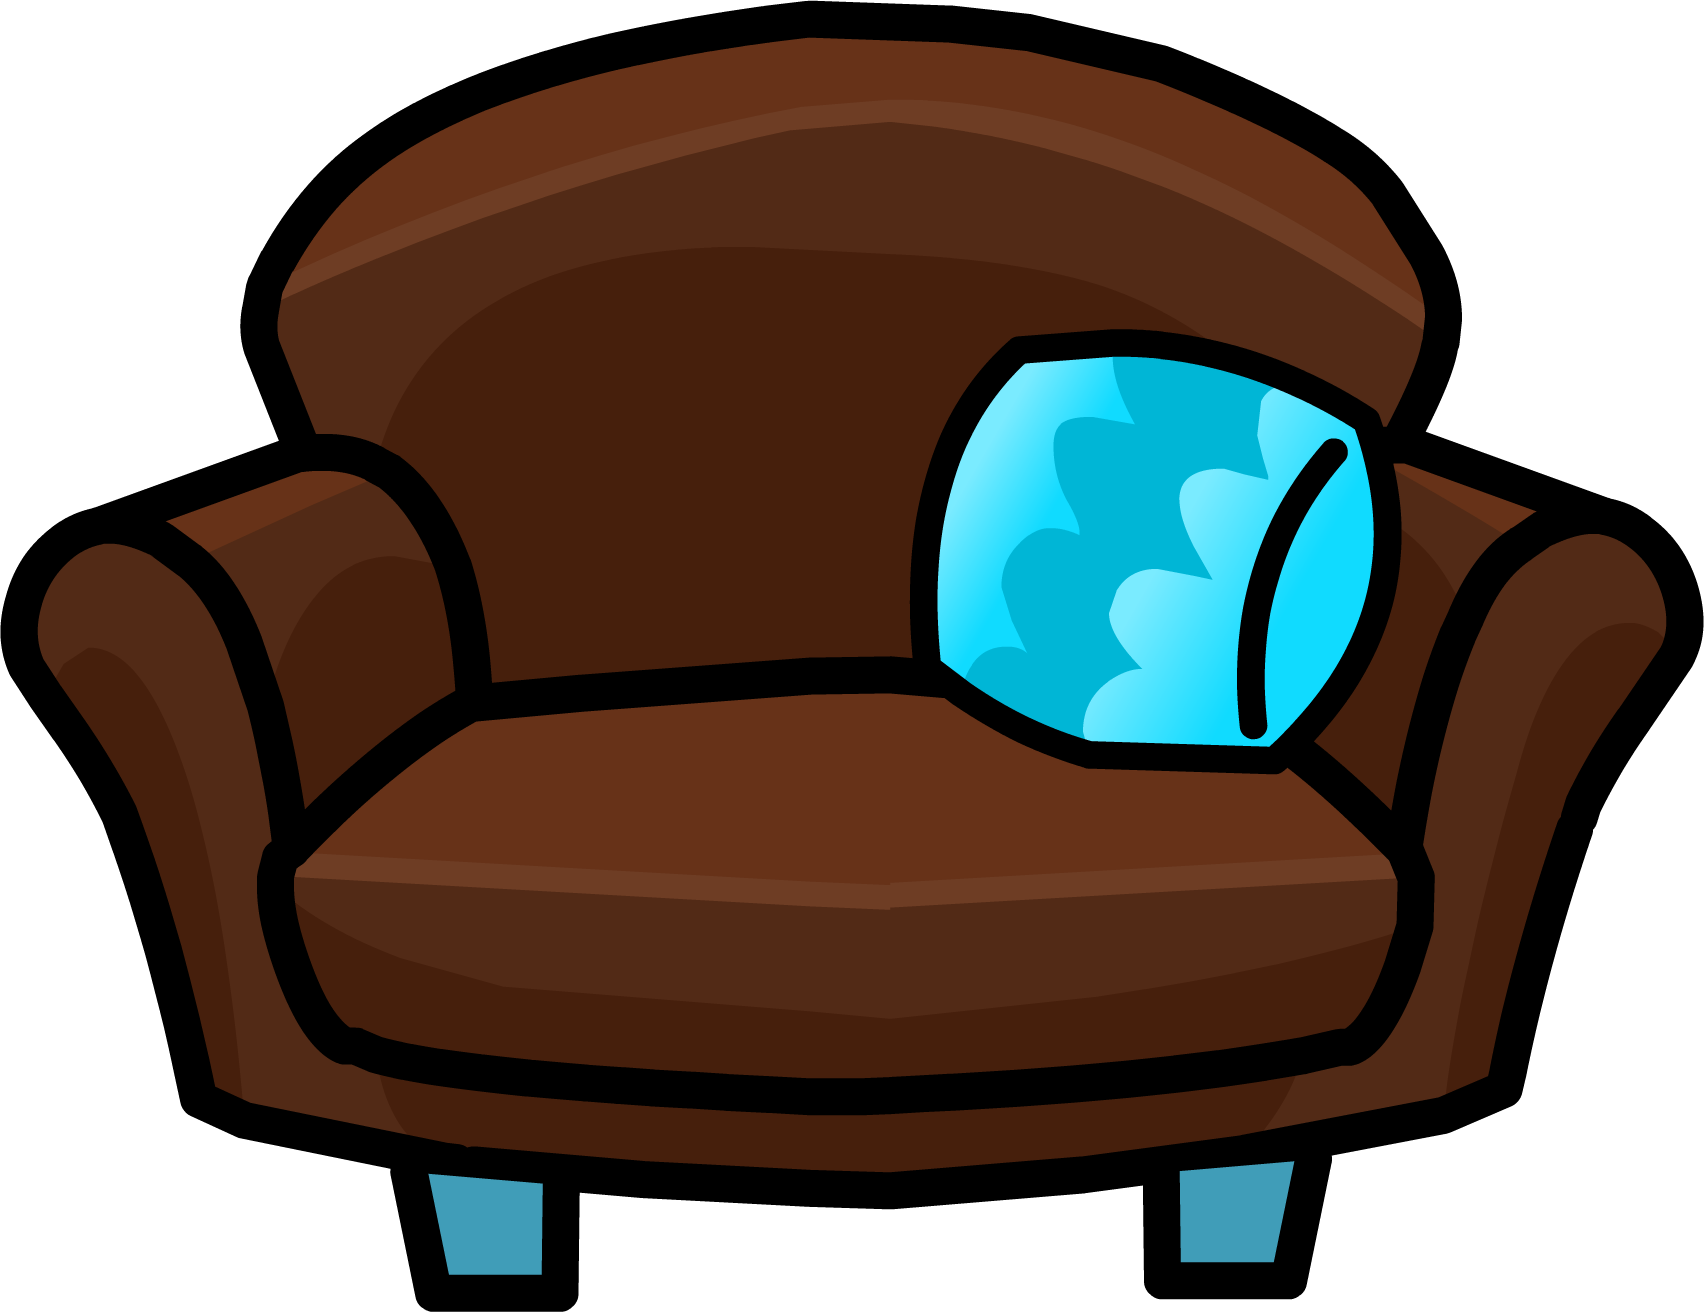 Image club penguin wiki fandom powered by wikia - Sofa herbergt s werelds ...